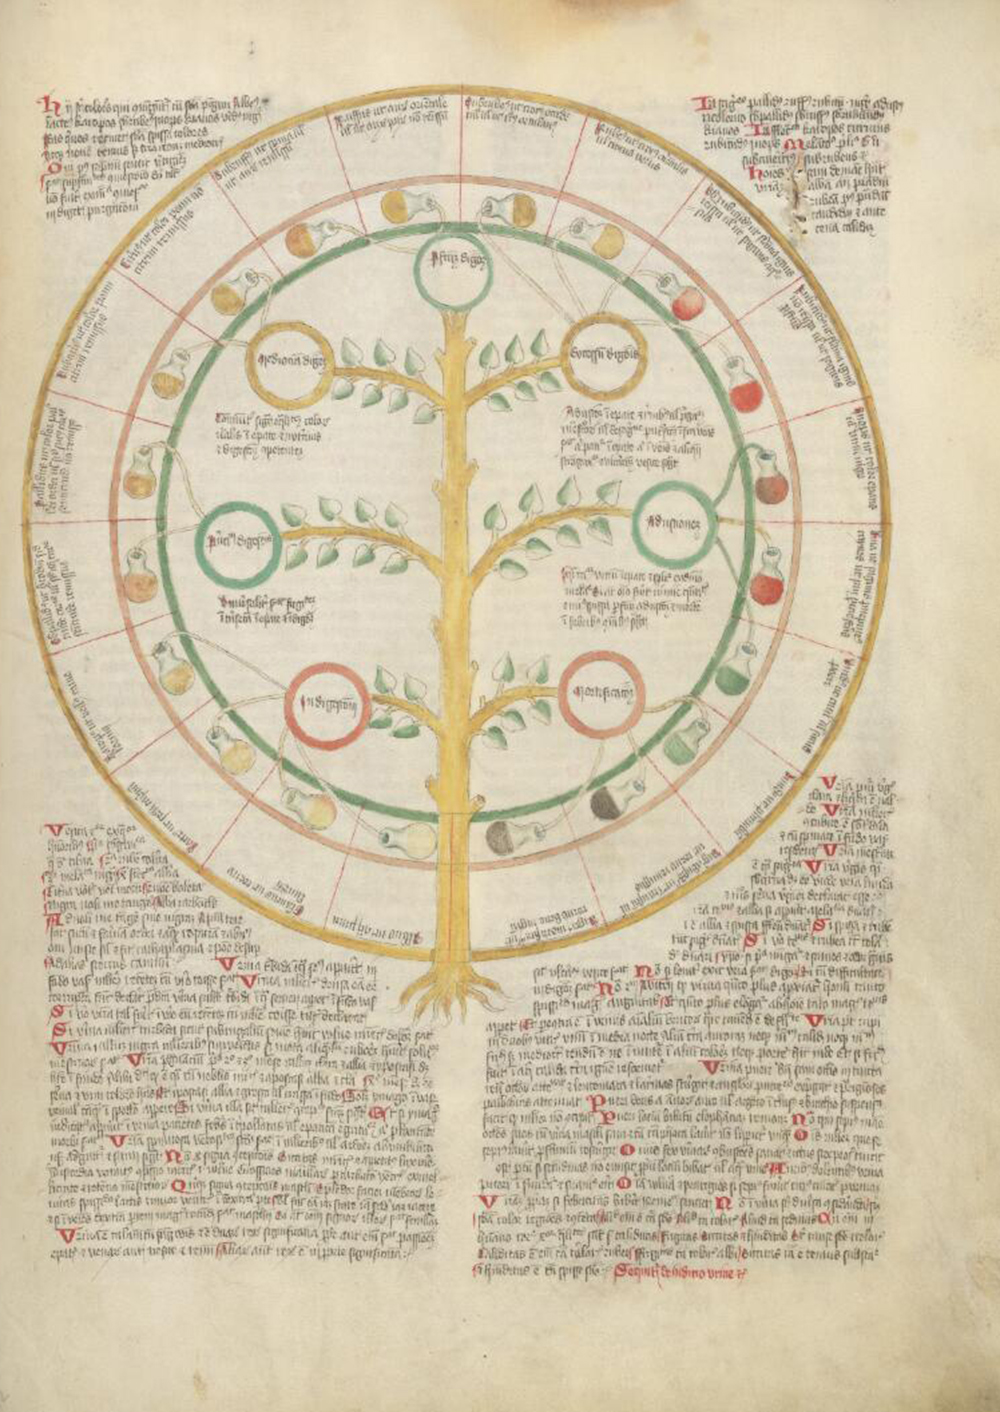 A wheel of urine spouting from a tree, from the Wellcome Apocalypse, c. 1420. Wellcome Library.